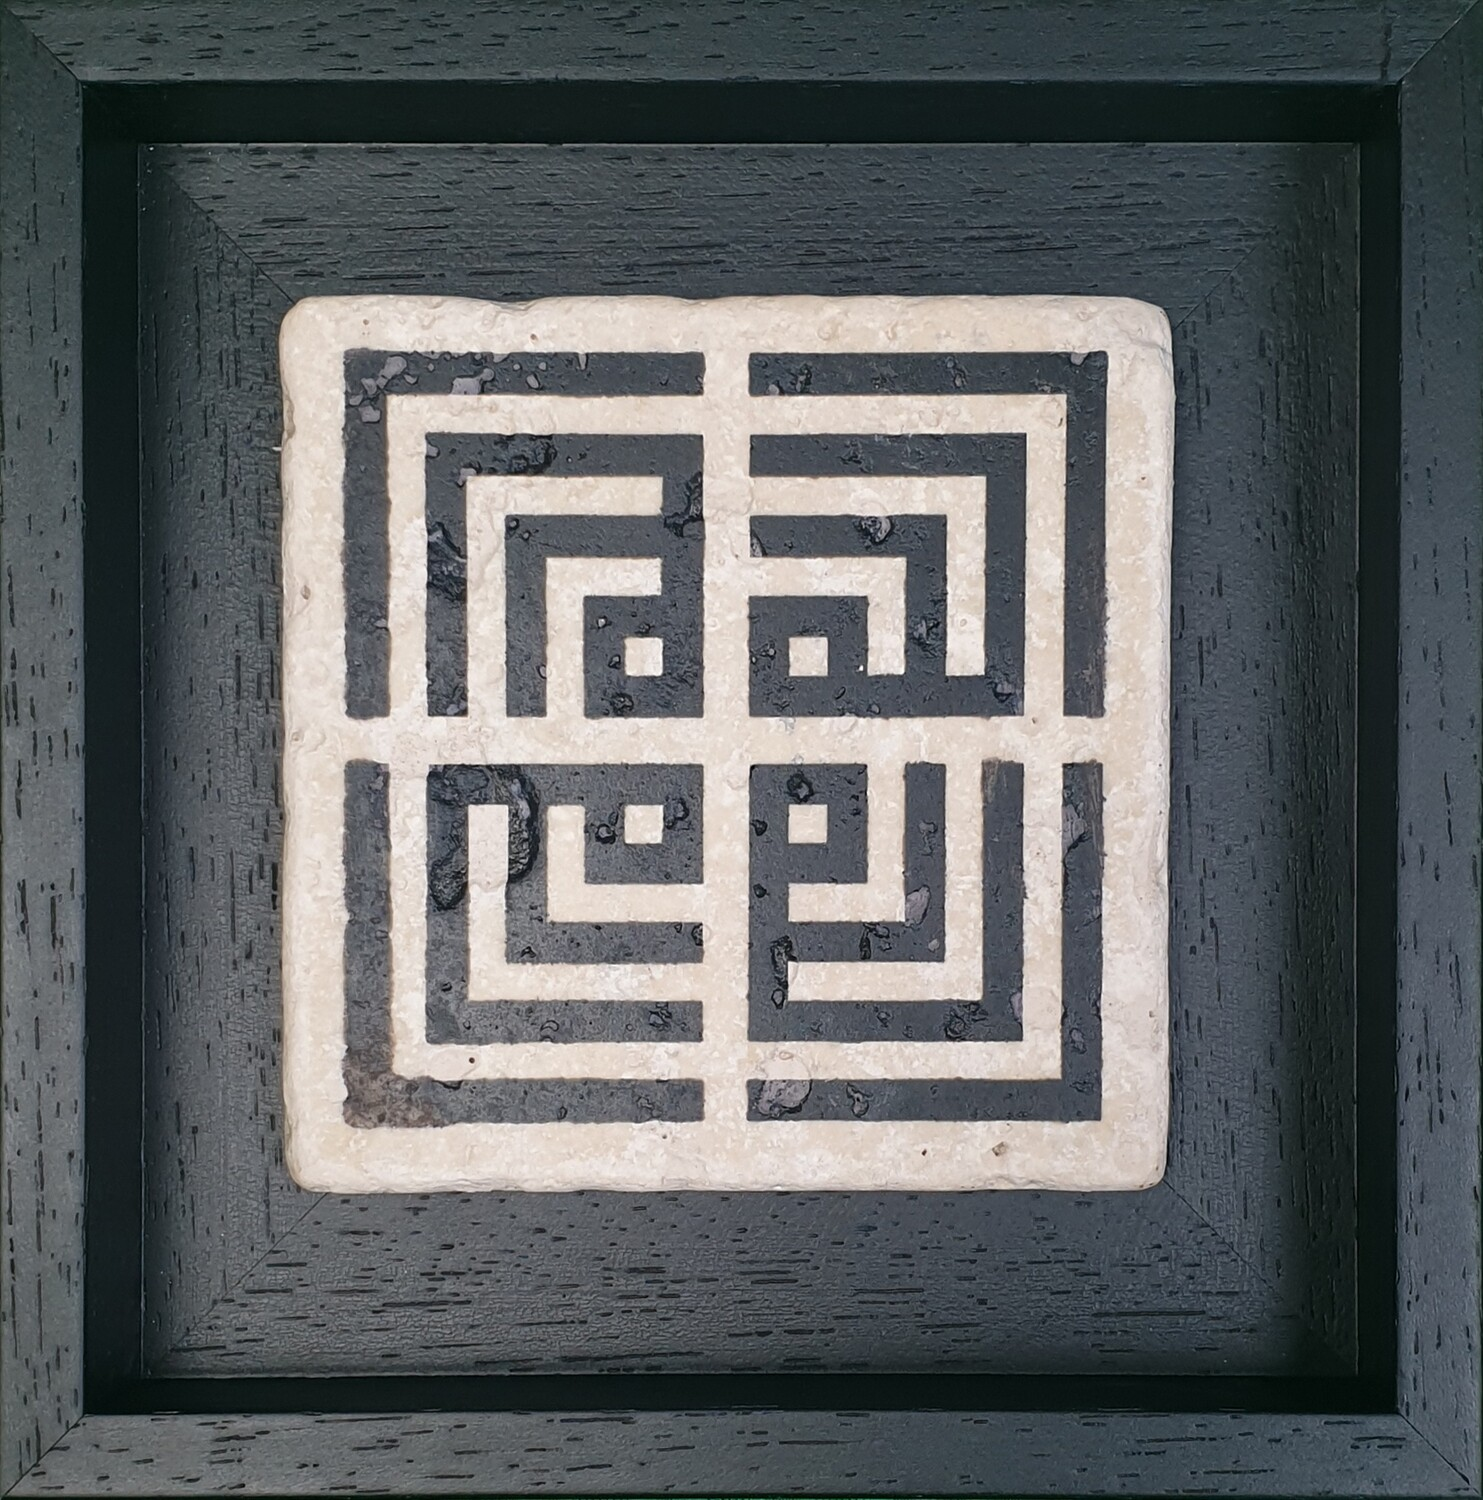 Allah Kufic Calligraphy Square Rotated Design Stone Art